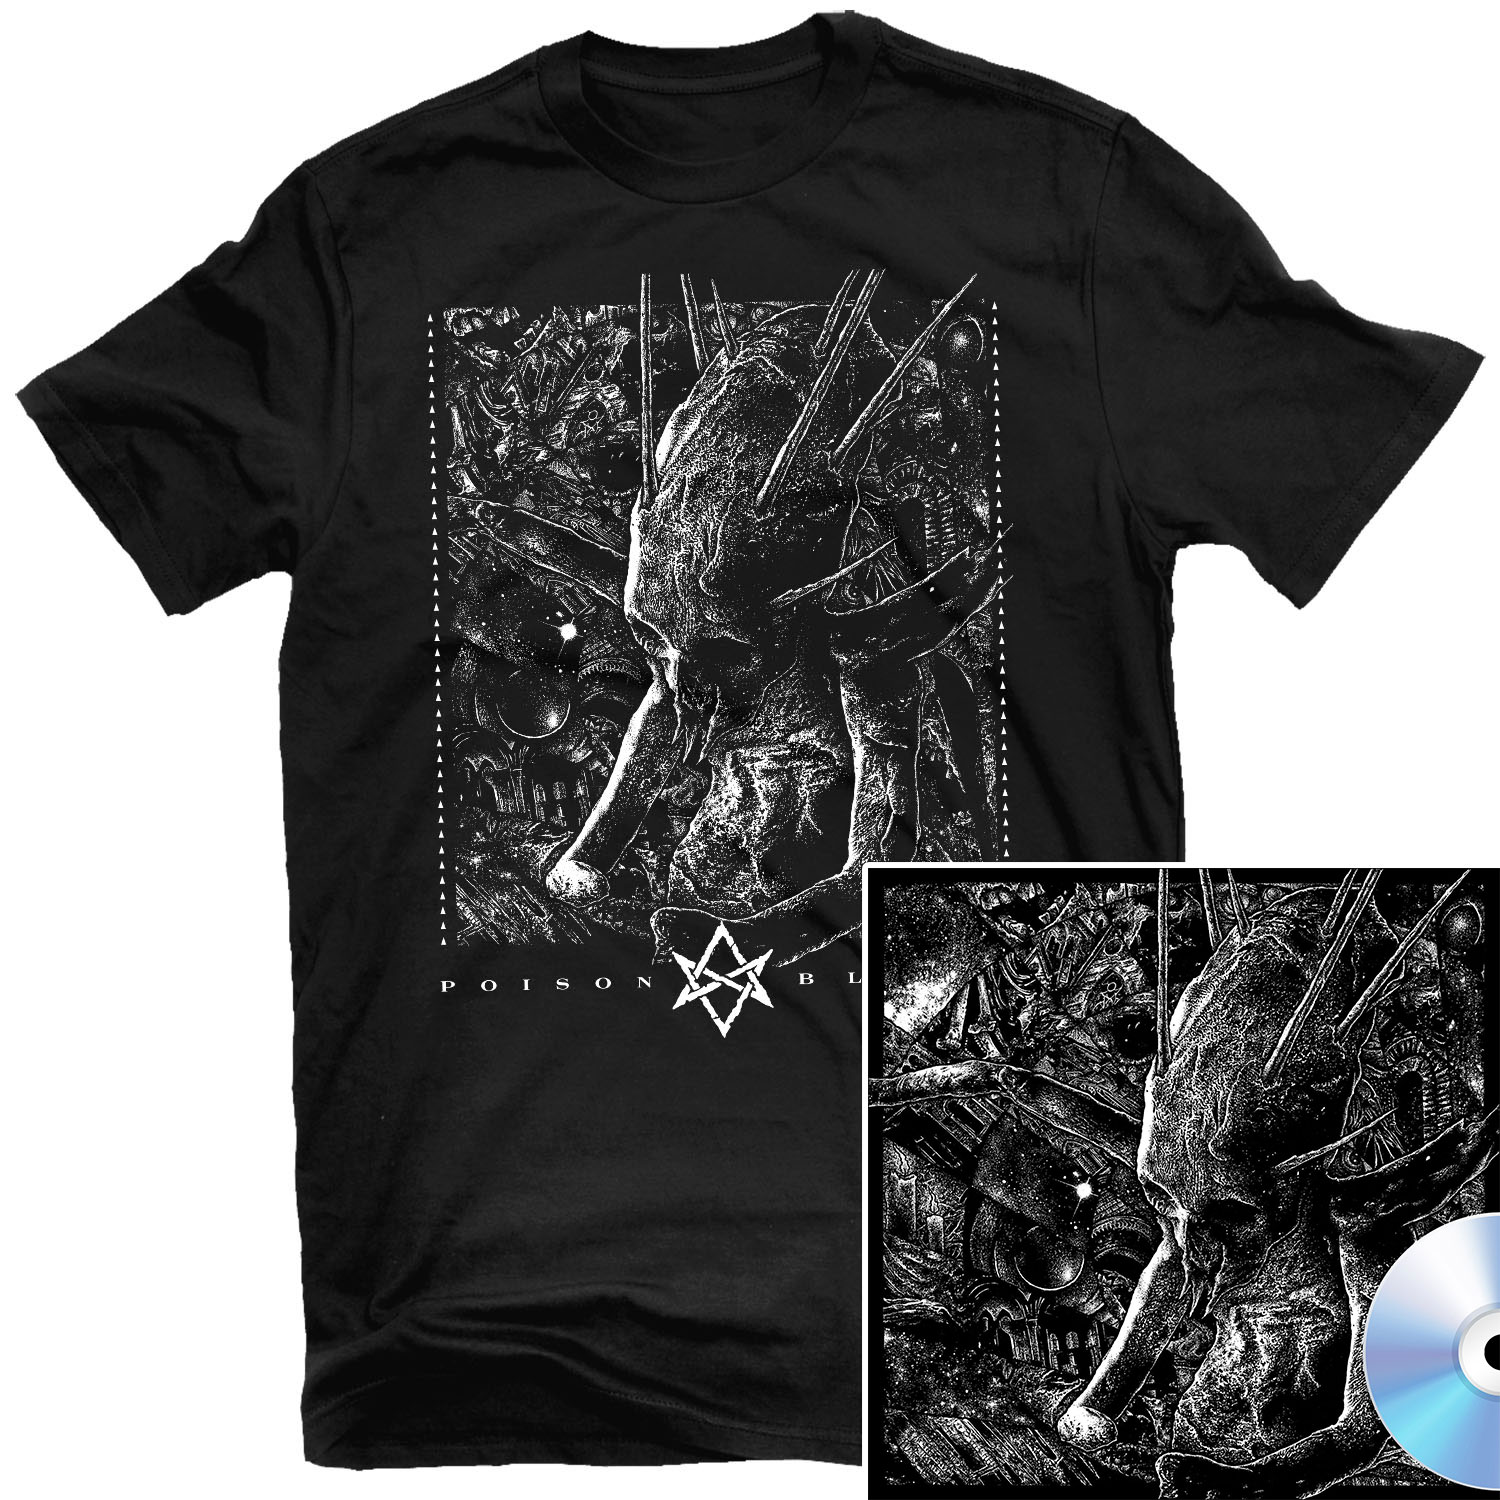 Poison Blood T Shirt + CD Bundle